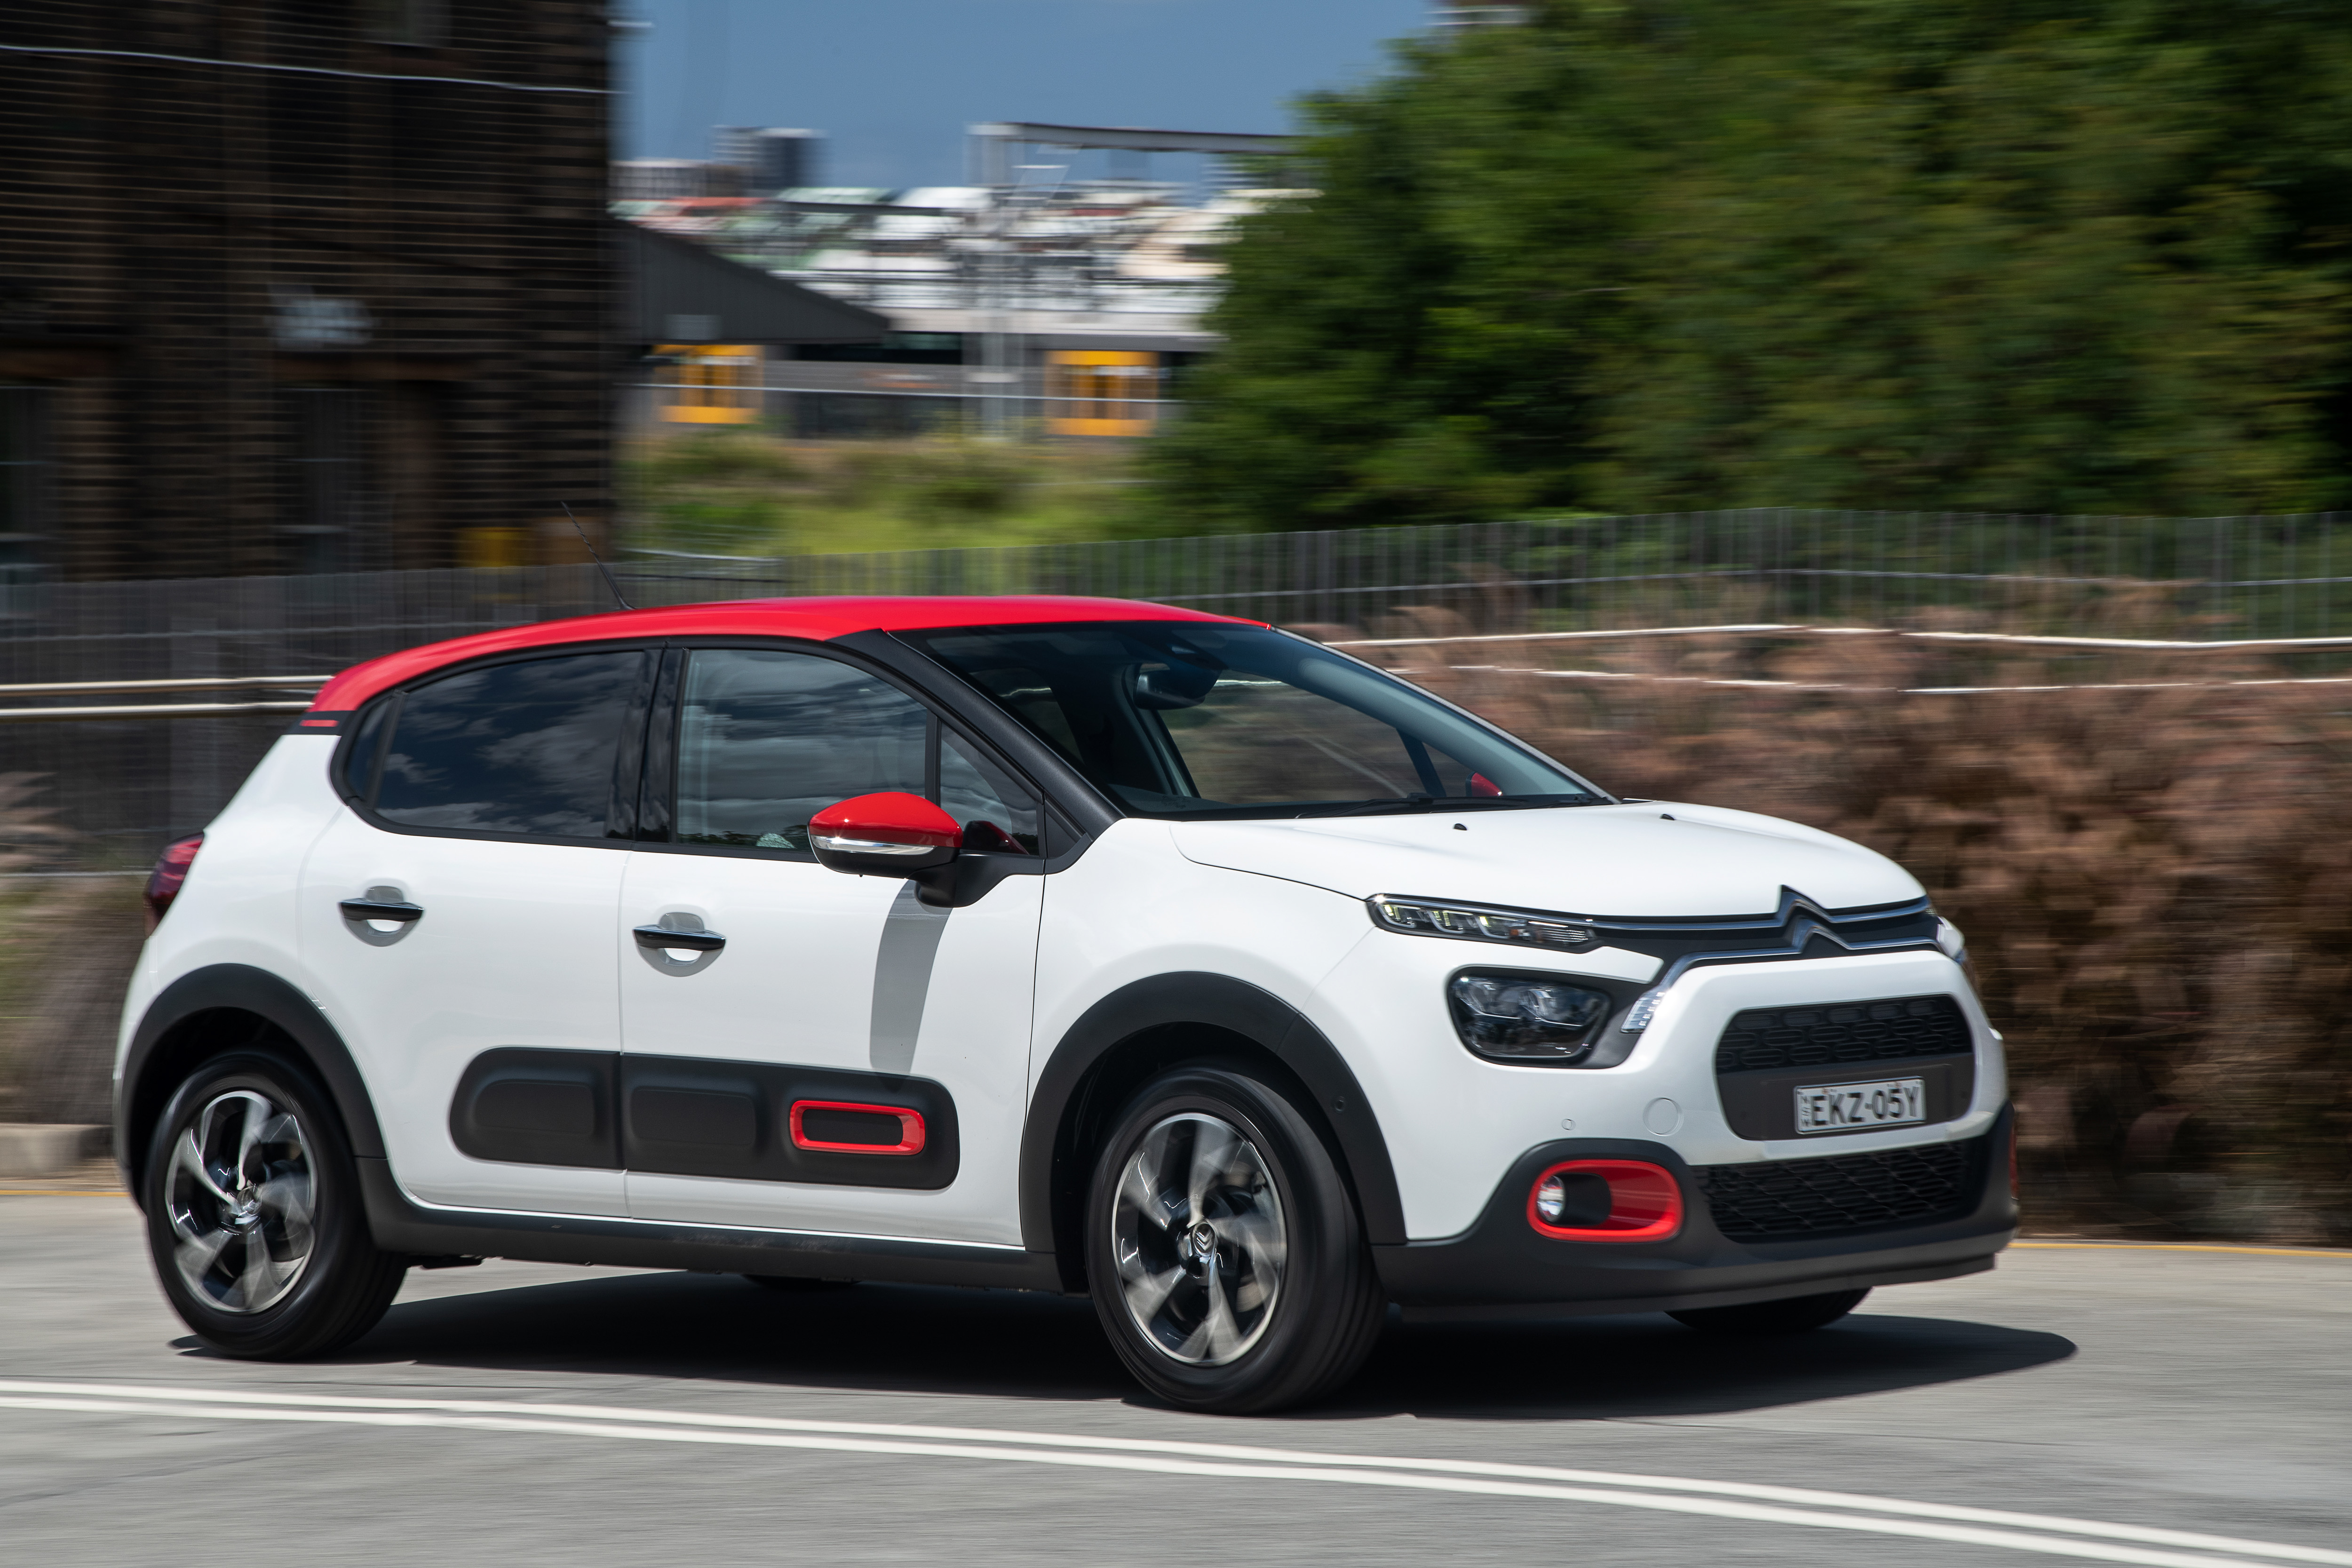 Citroen gives its small C3 hatch a mid-life update with more standard features